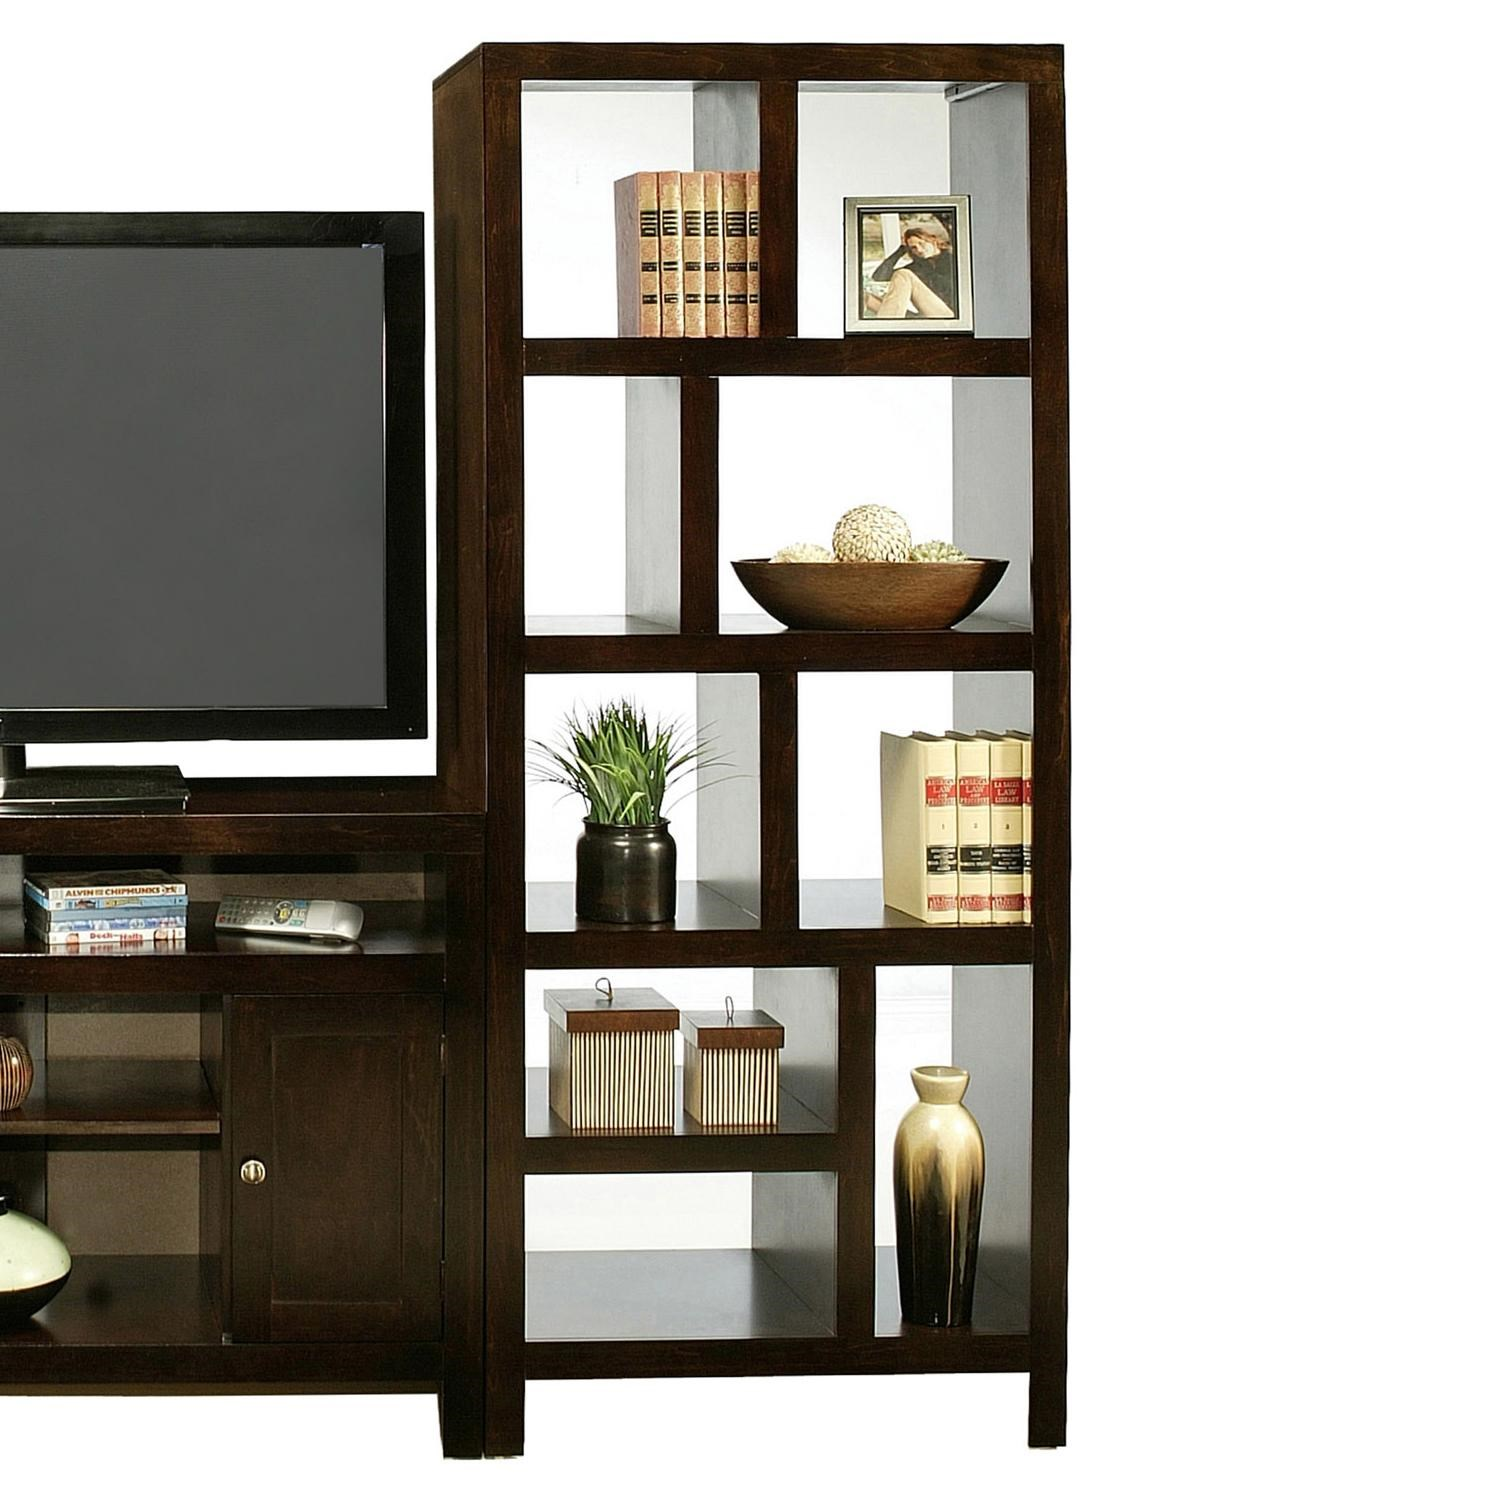 Del Mar Room Divider Tower - Belfort Furniture - Open Bookcase